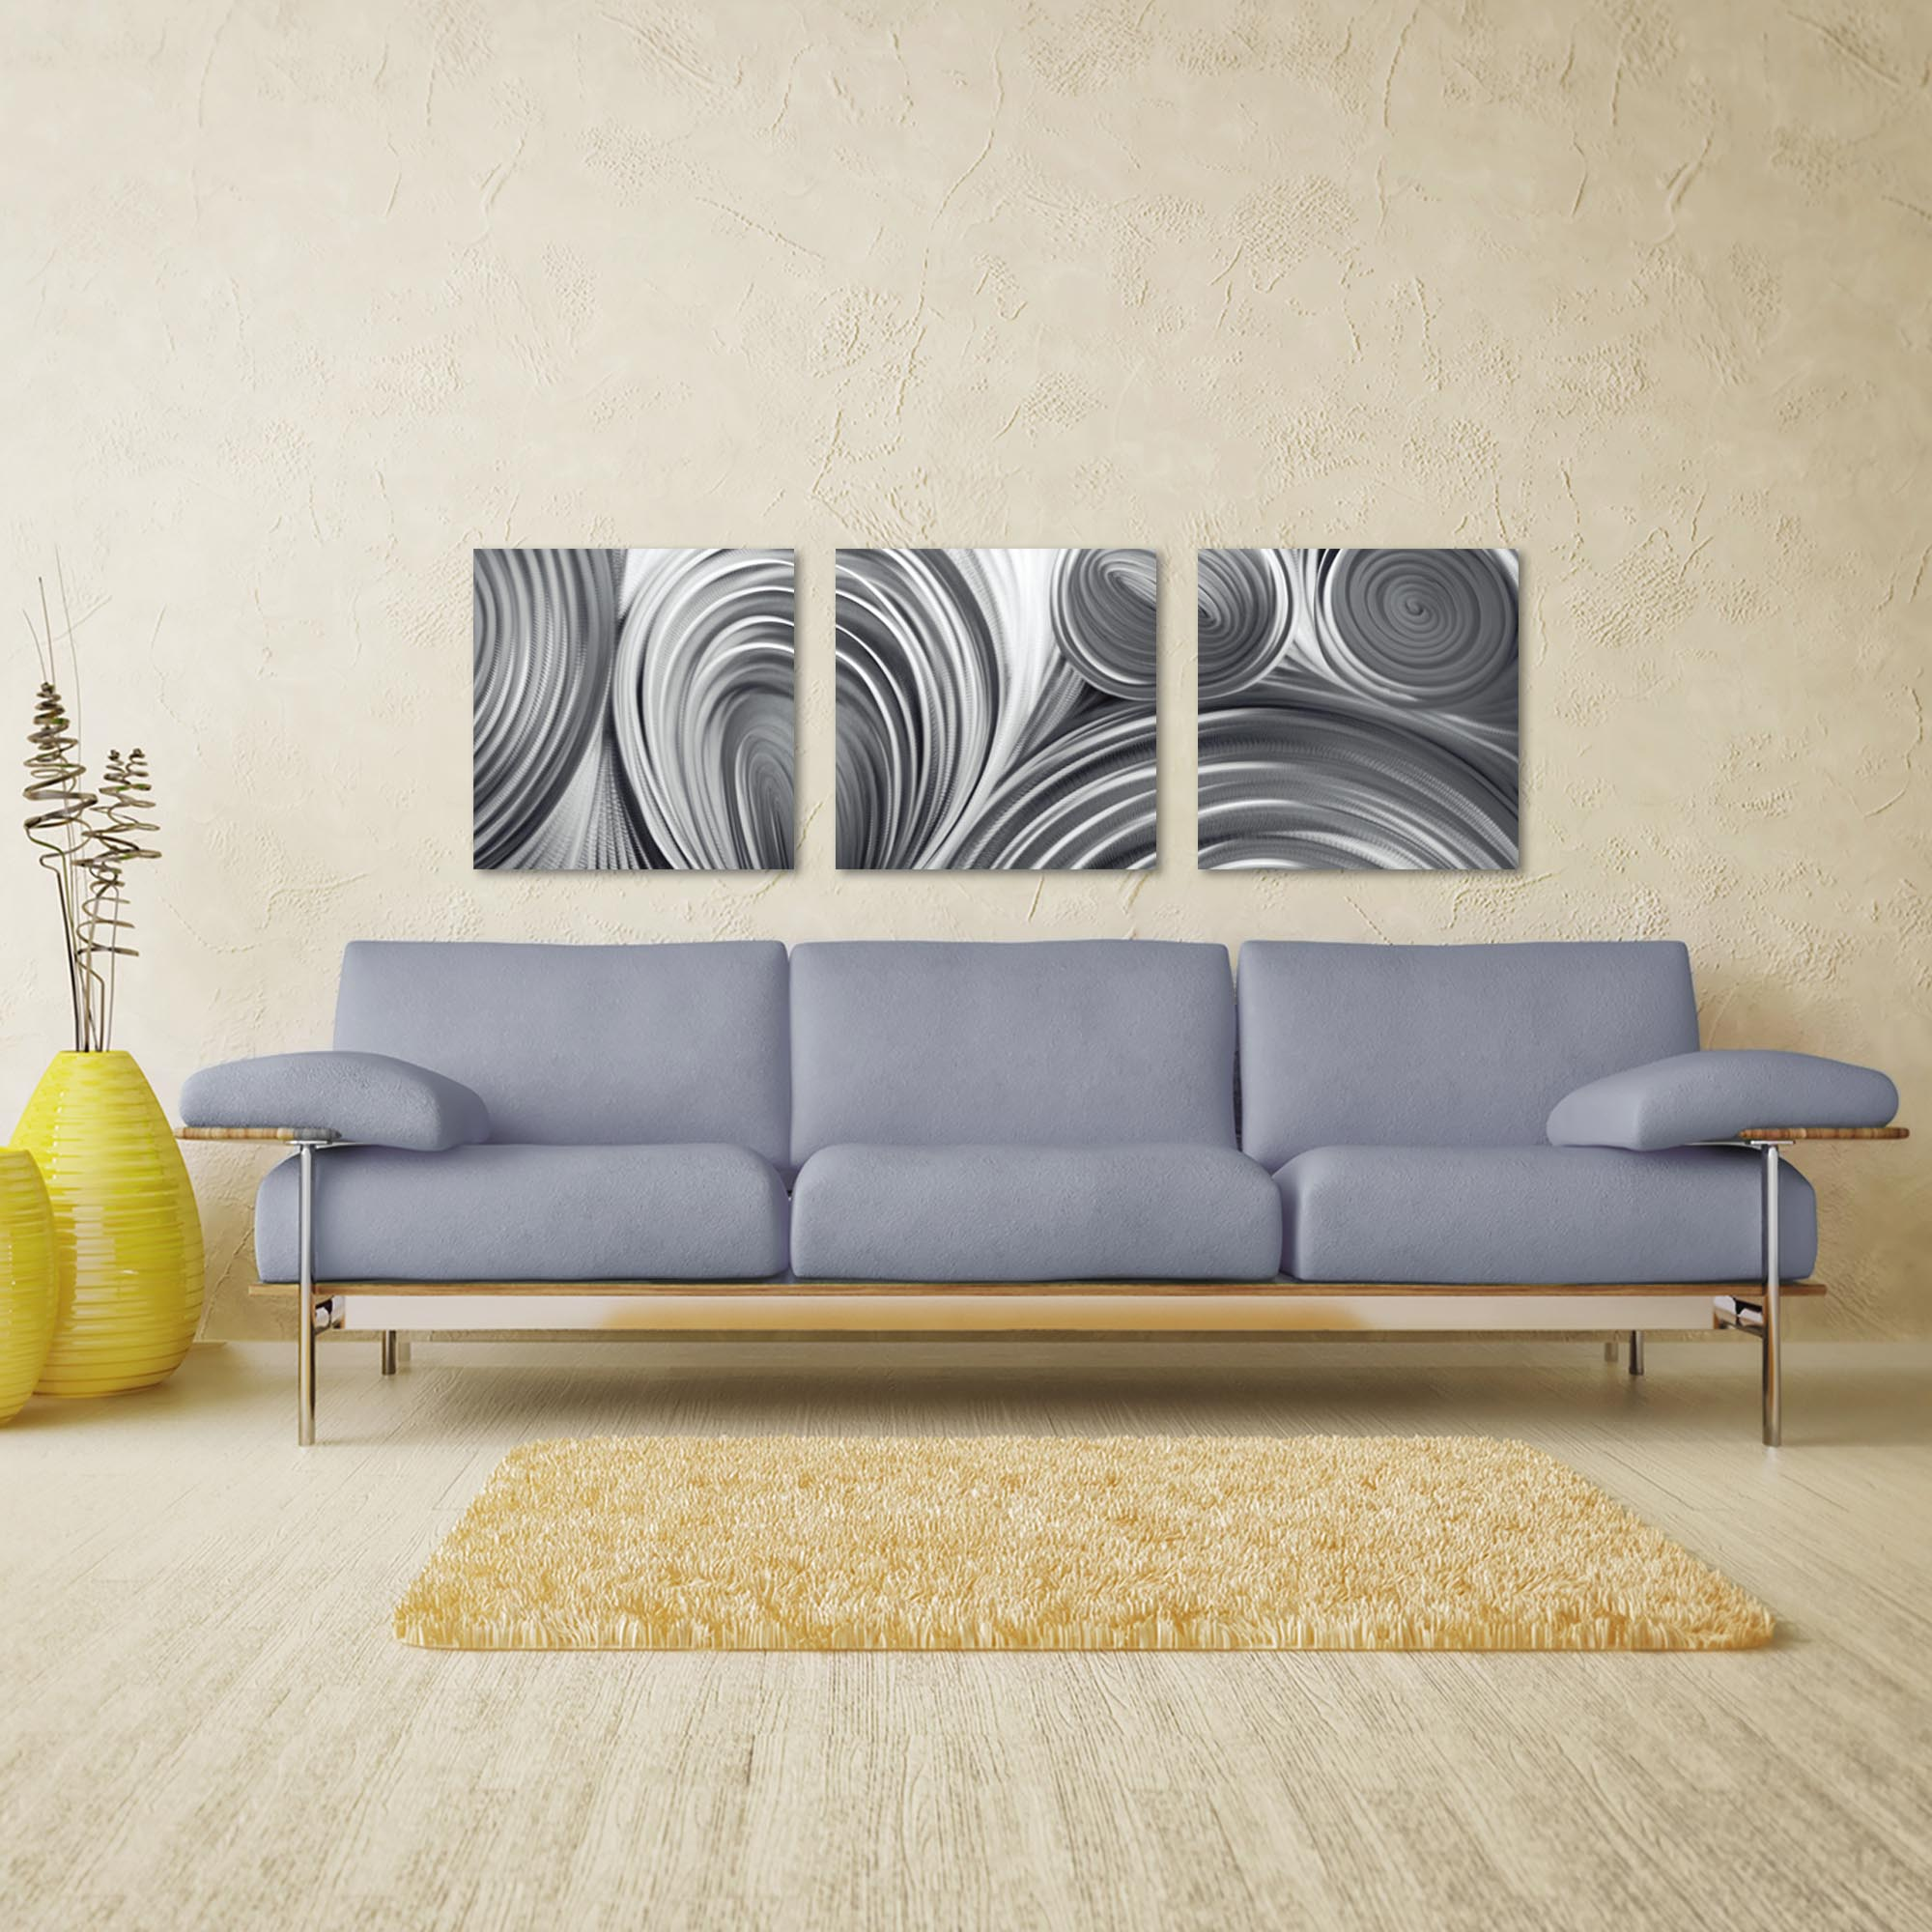 Conduction Triptych Large 70x22in. Metal or Acrylic Contemporary Decor - Lifestyle View